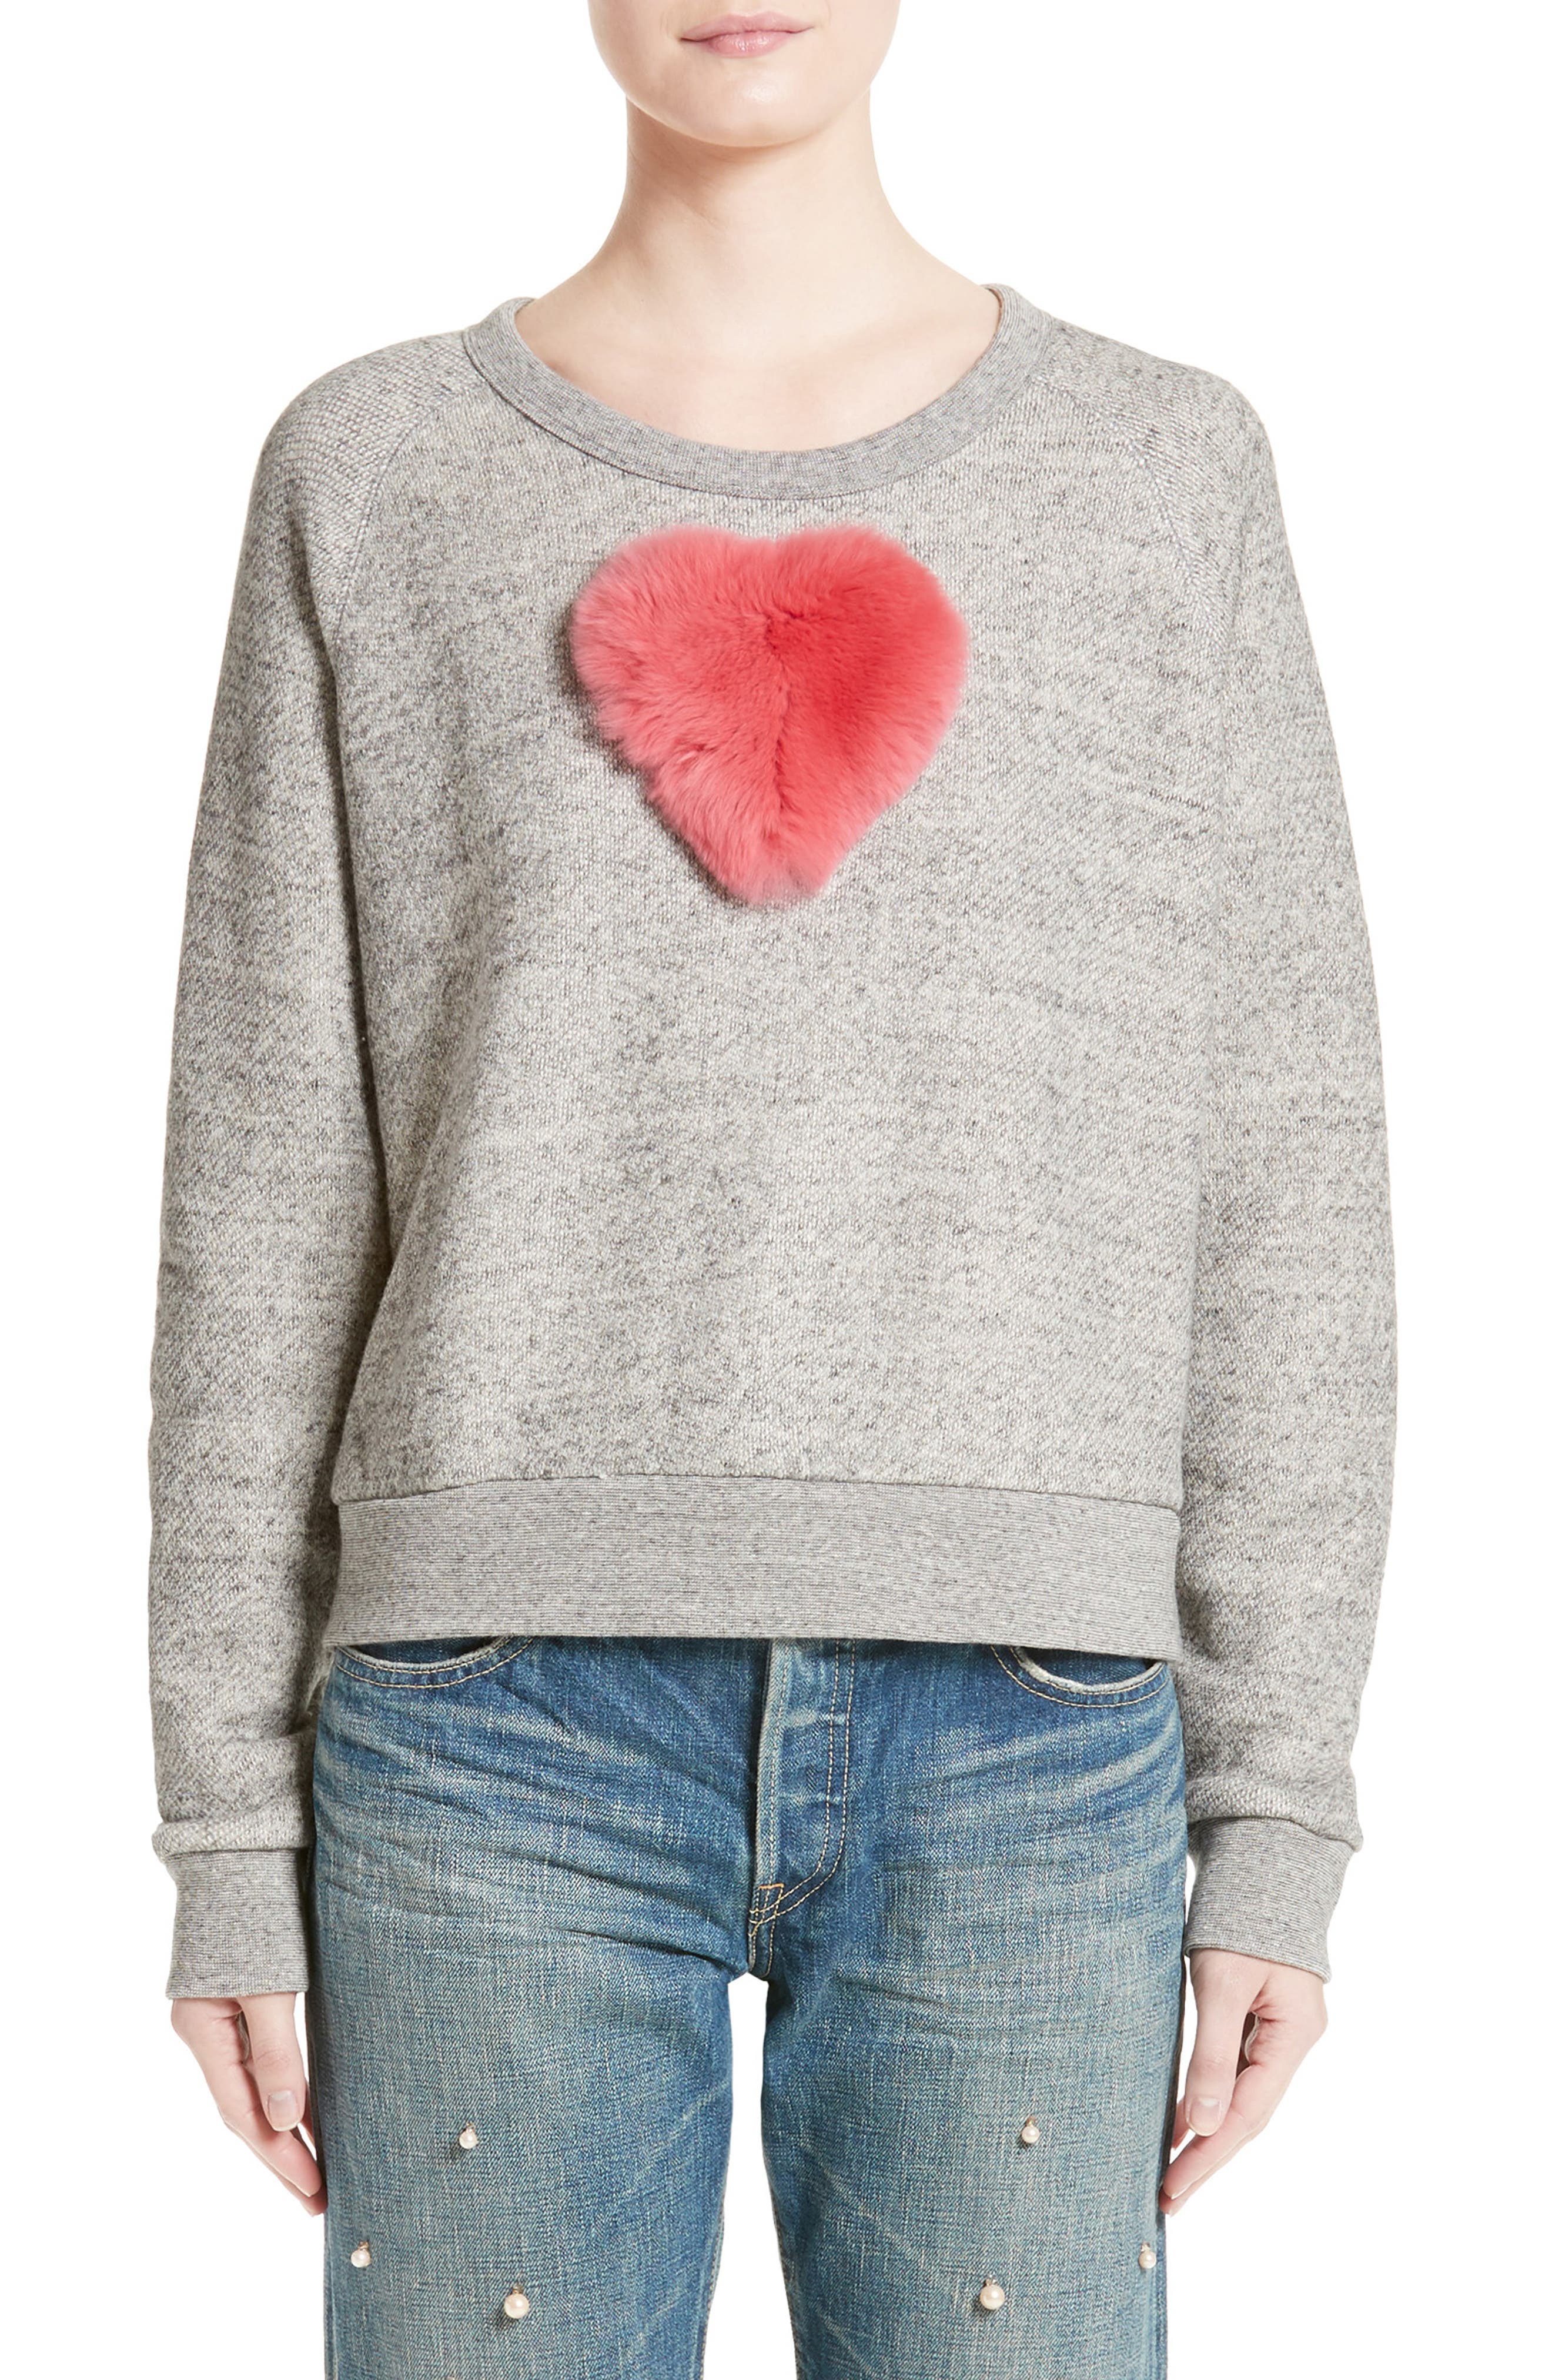 One Heart Pullover,                         Main,                         color, Charcoal/Red